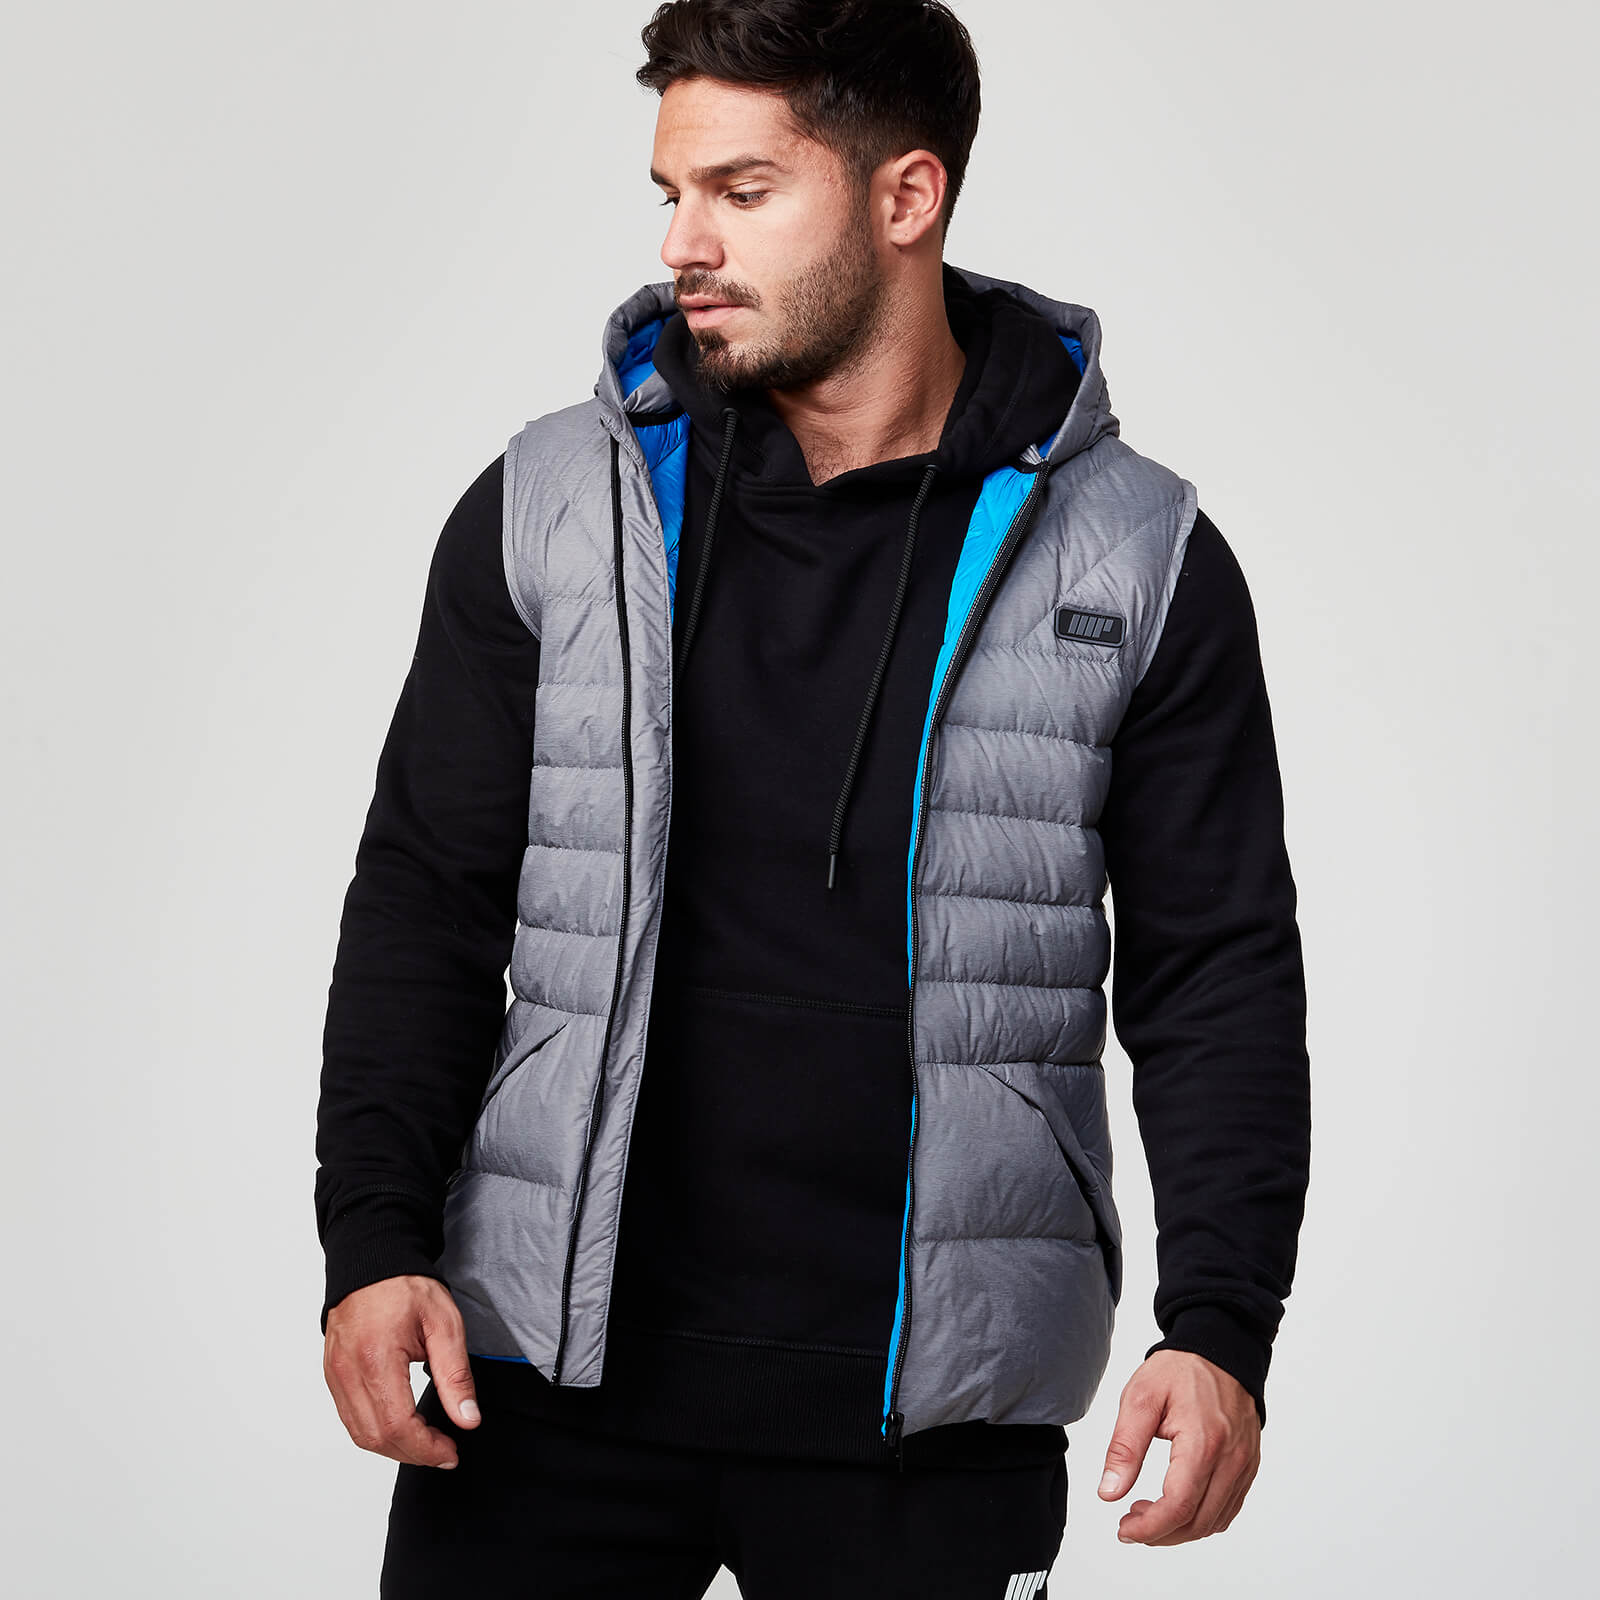 Myprotein Pro Tech Heavyweight Gilet - Grey - L